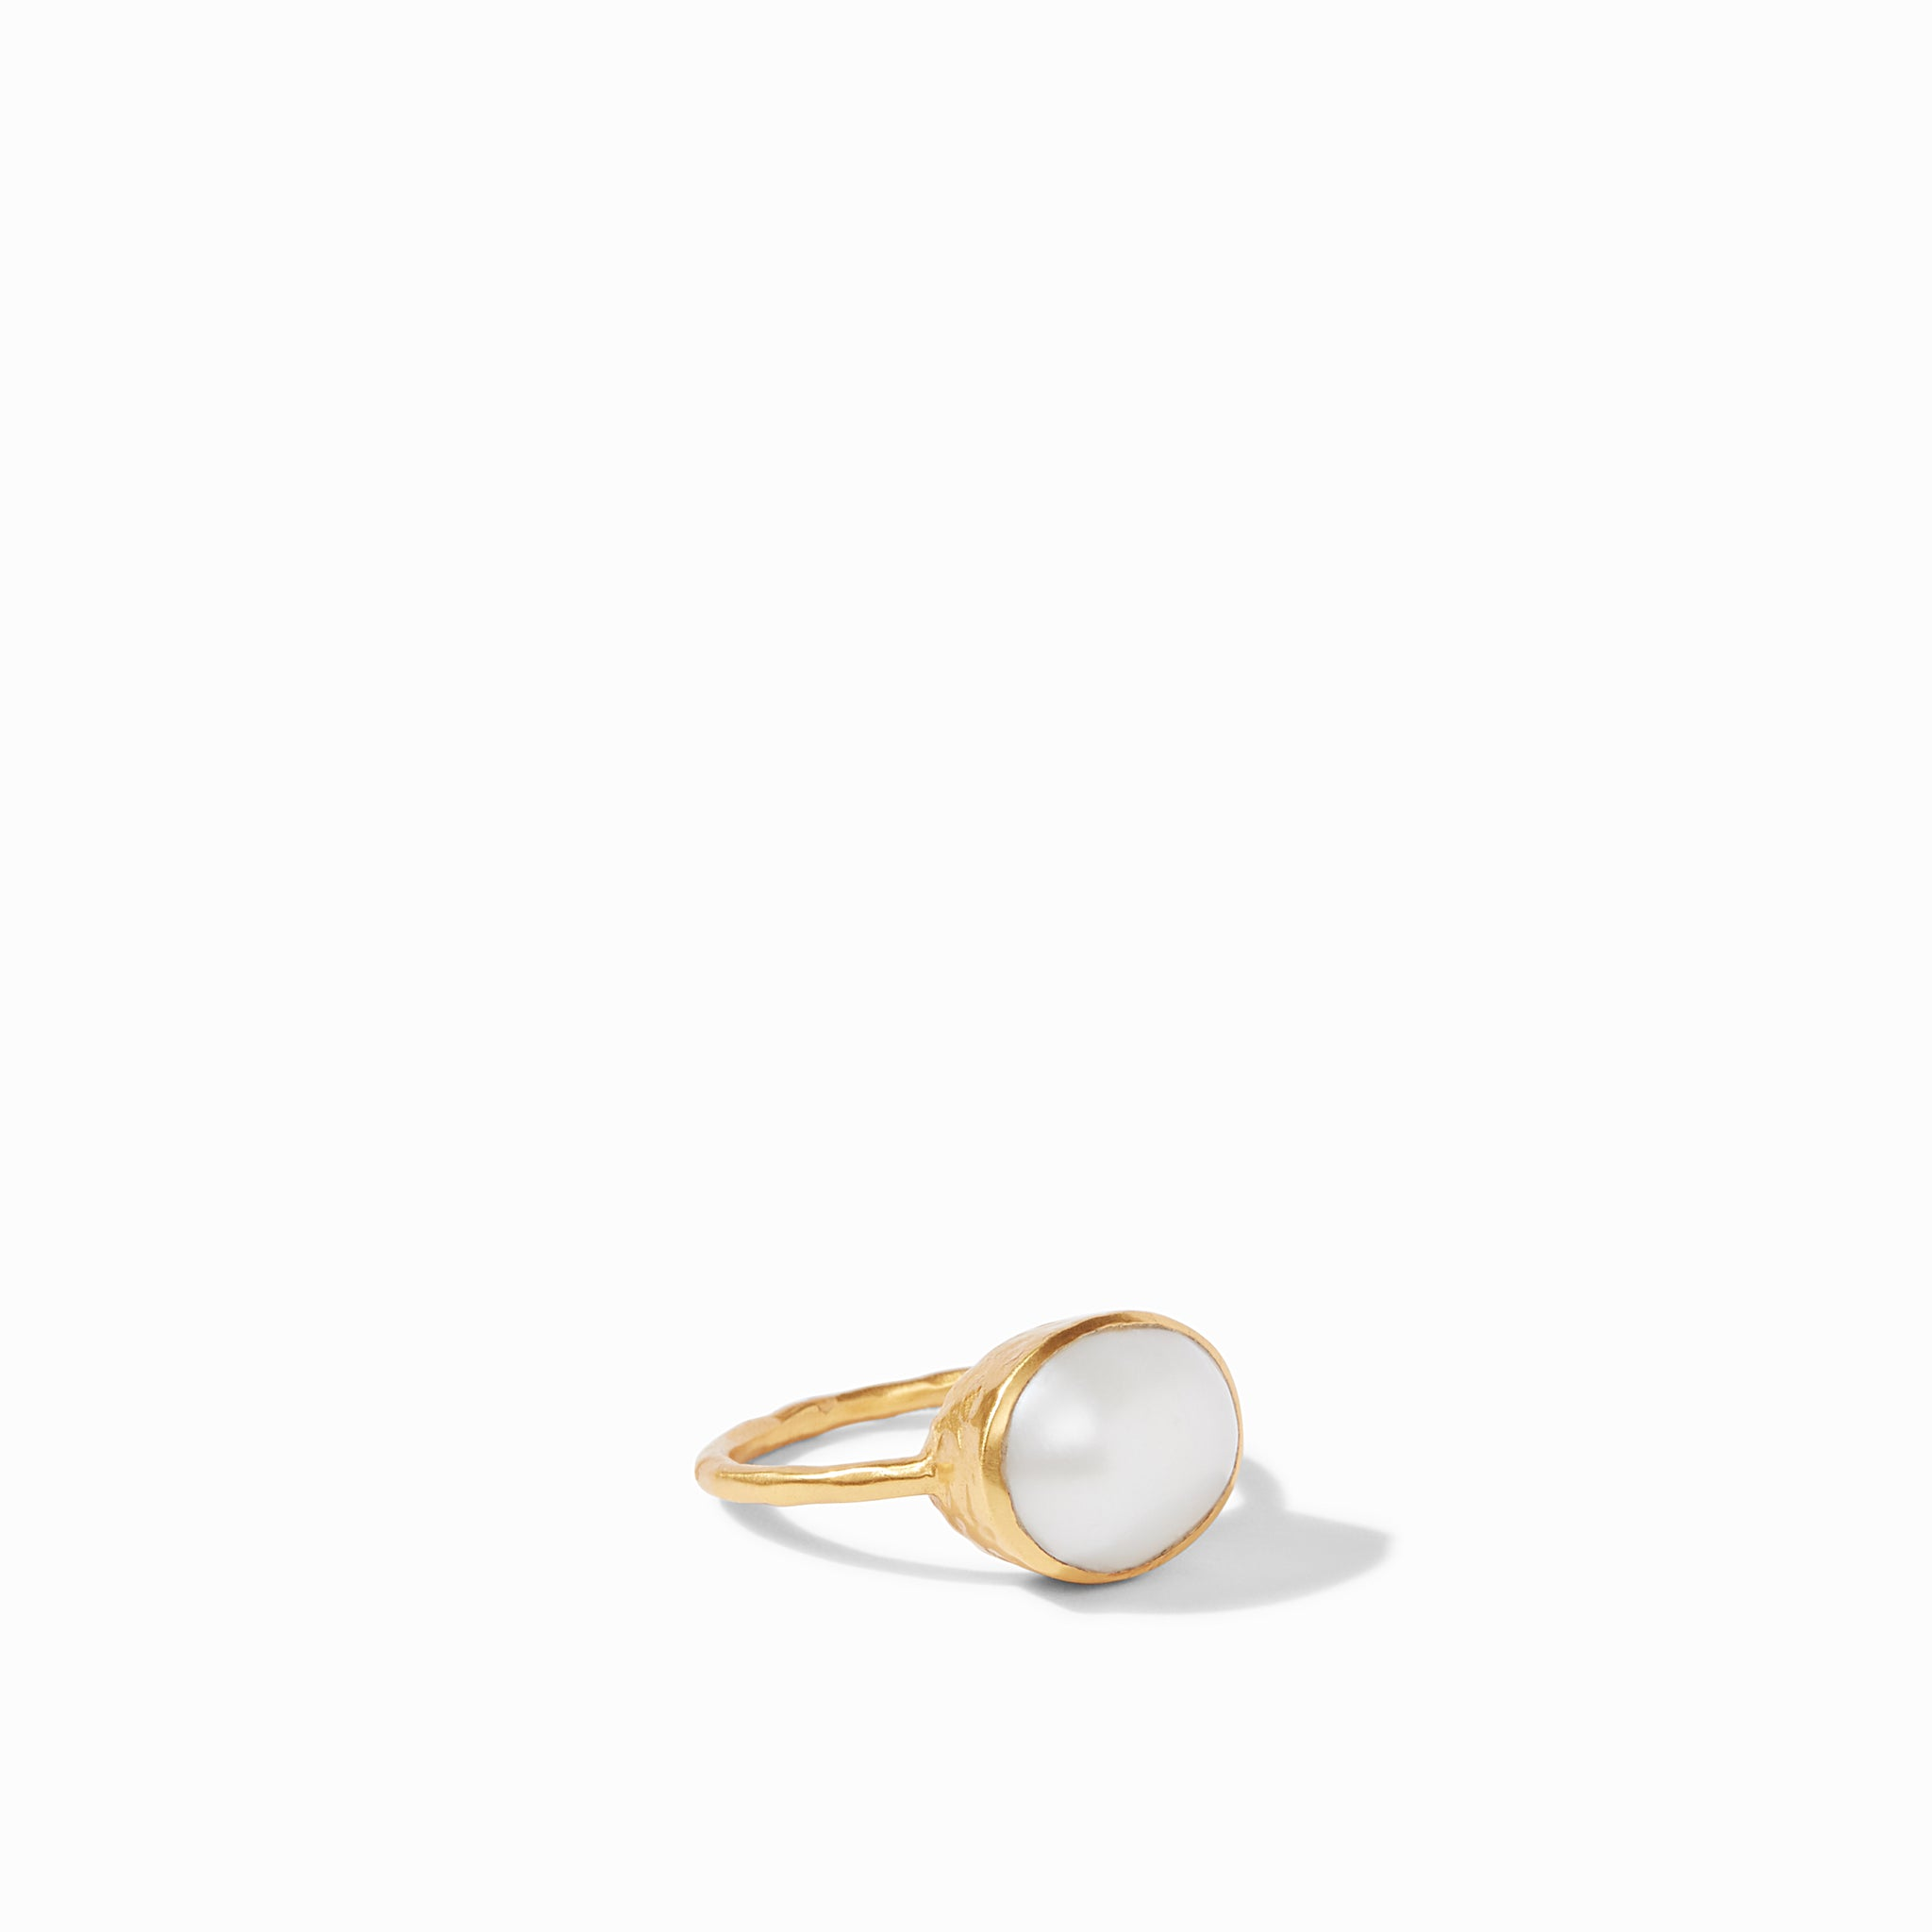 Pearl, catalina collection, long weekend look, pearl jewels, perfect pairings, clear winners